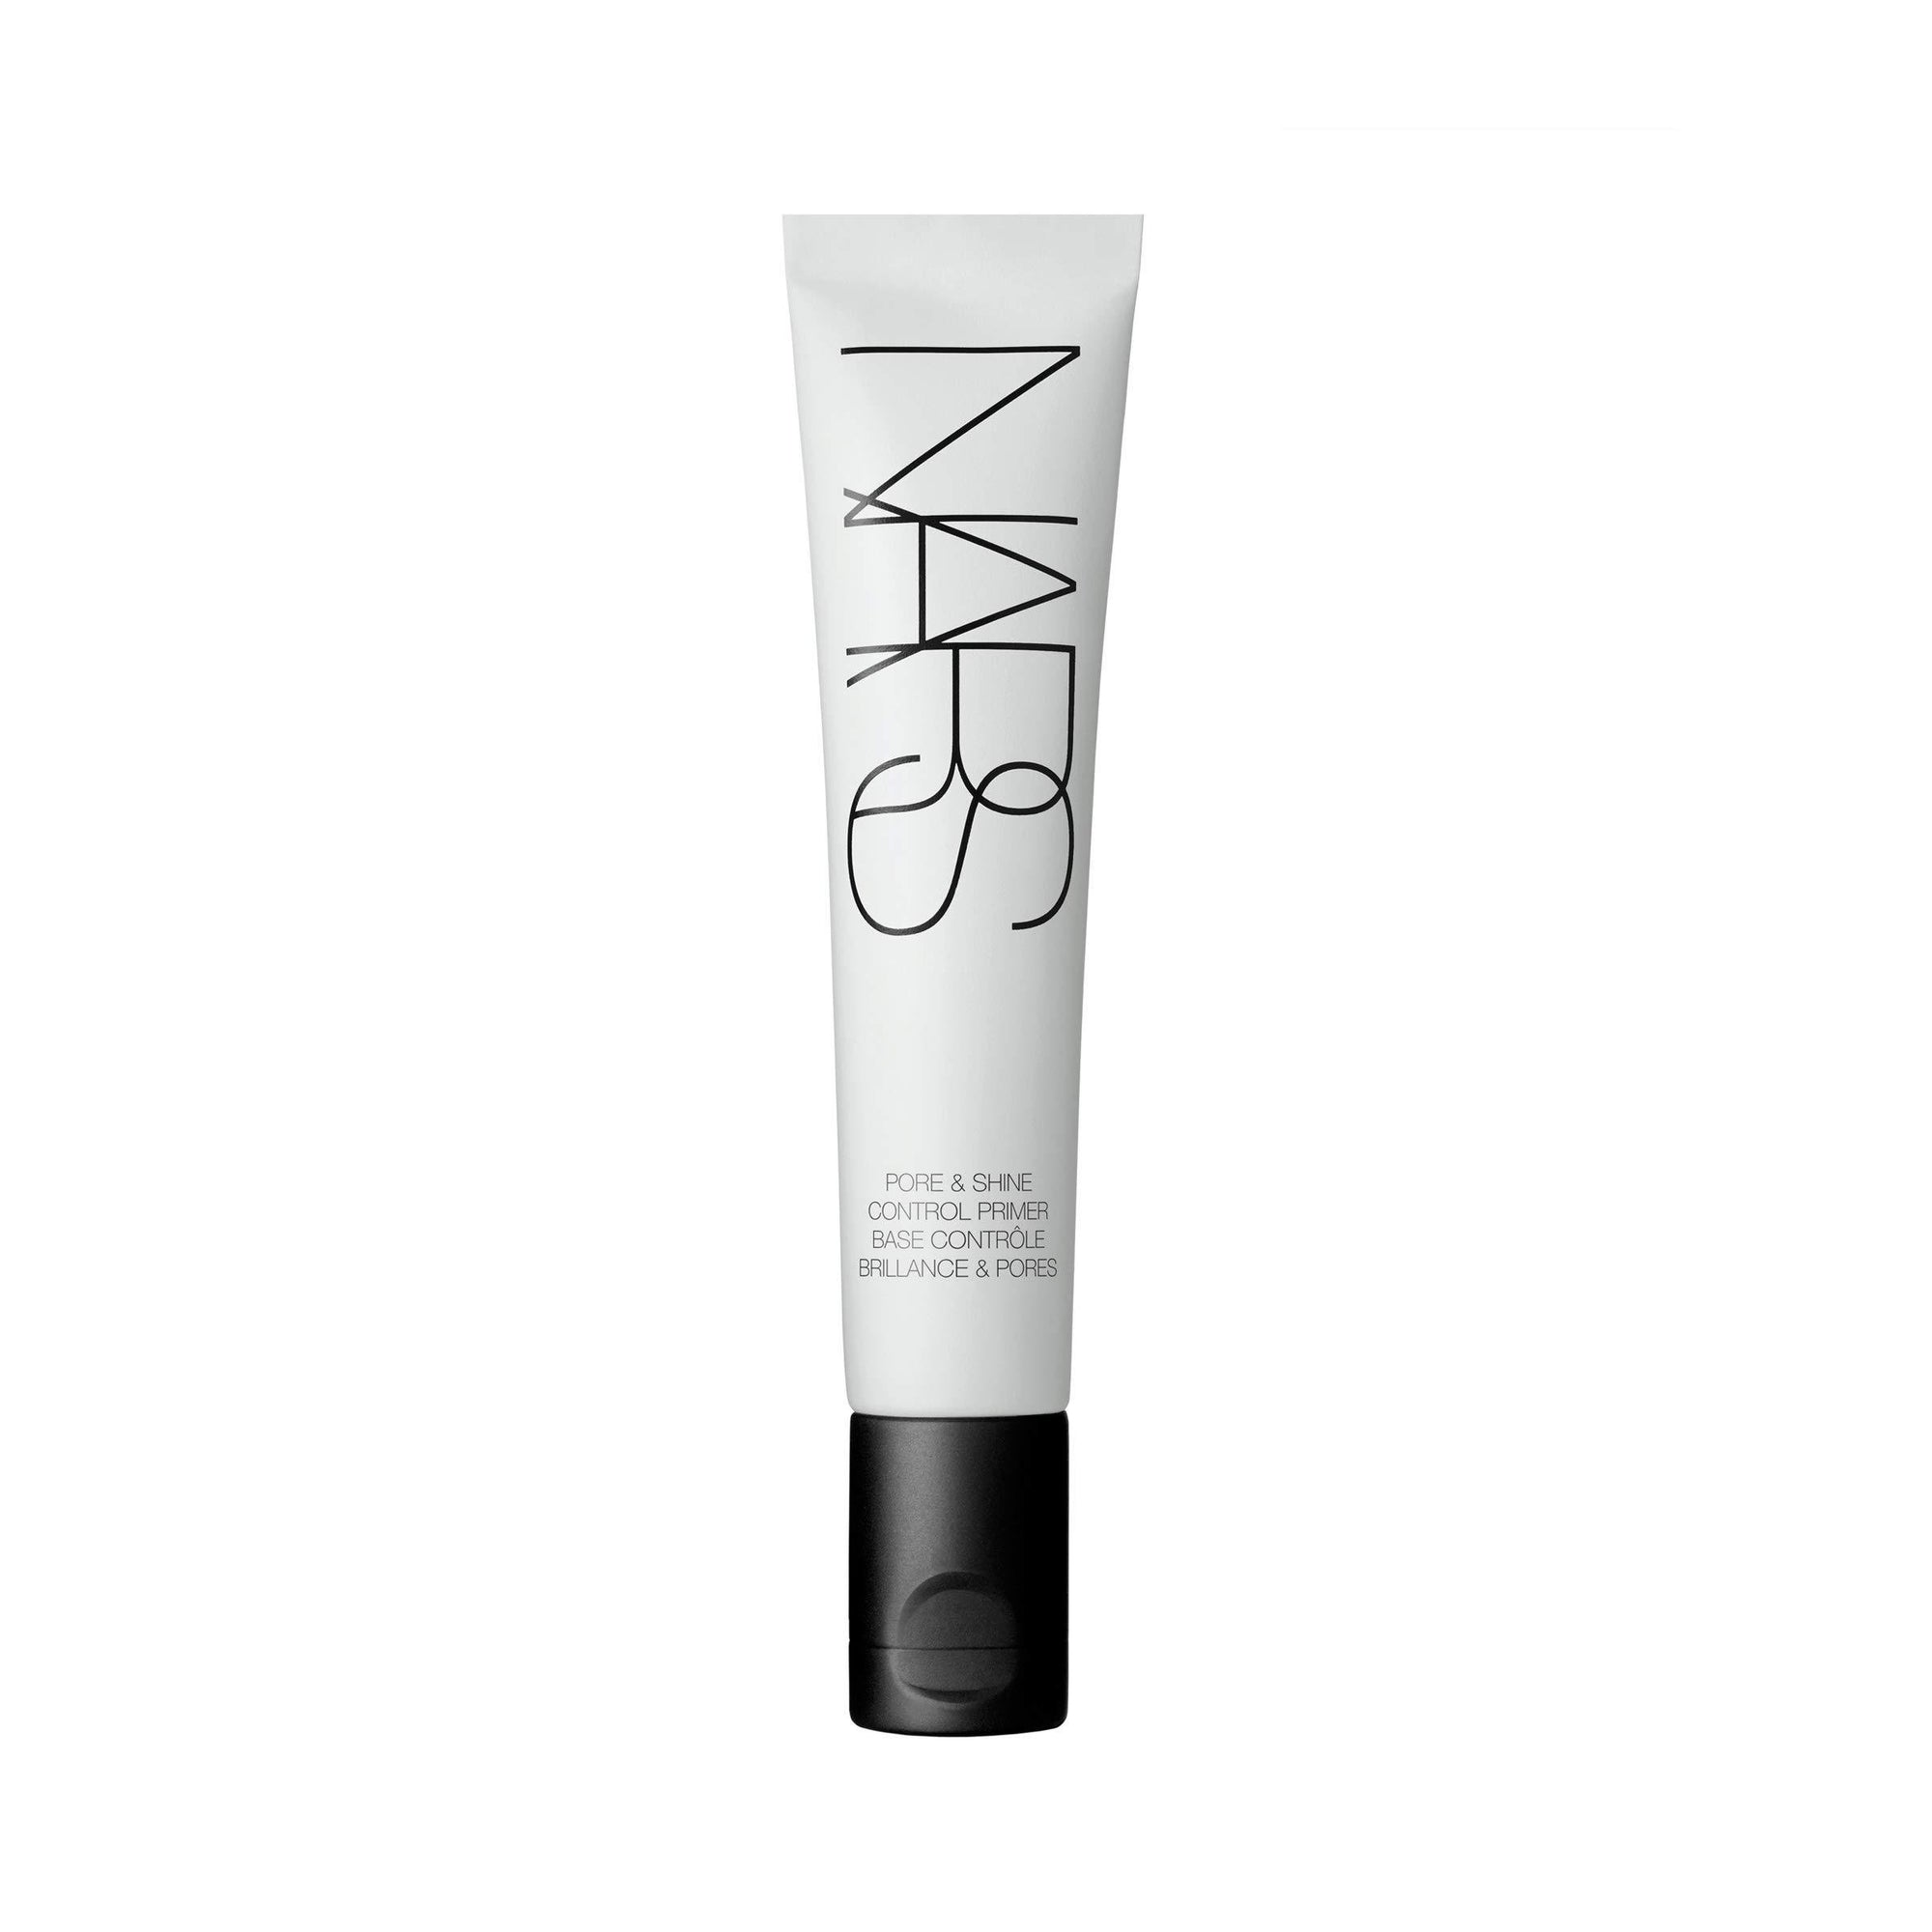 NARS Cosmetics Beauty Moisturize Pore & Shine Control Primer - 1 oz (30 ml) - Glumech